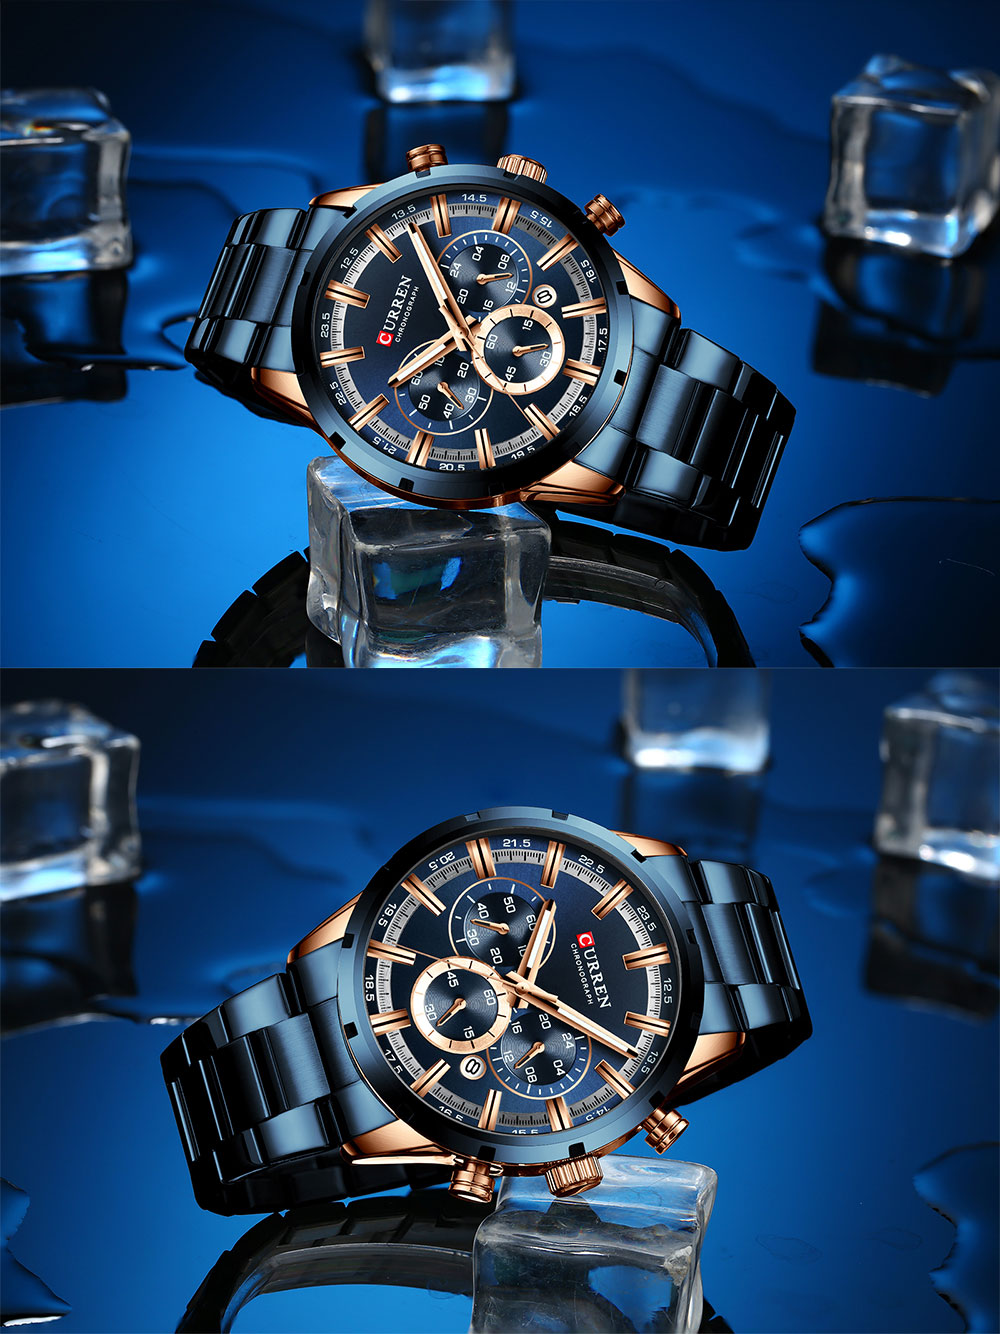 CURREN New Fashion Mens Watches with Stainless Steel Top Brand Luxury Sports Chronograph Quartz Watch Men Relogio Masculino H7c1a397a2f5f4961b1f24d185e4633eez